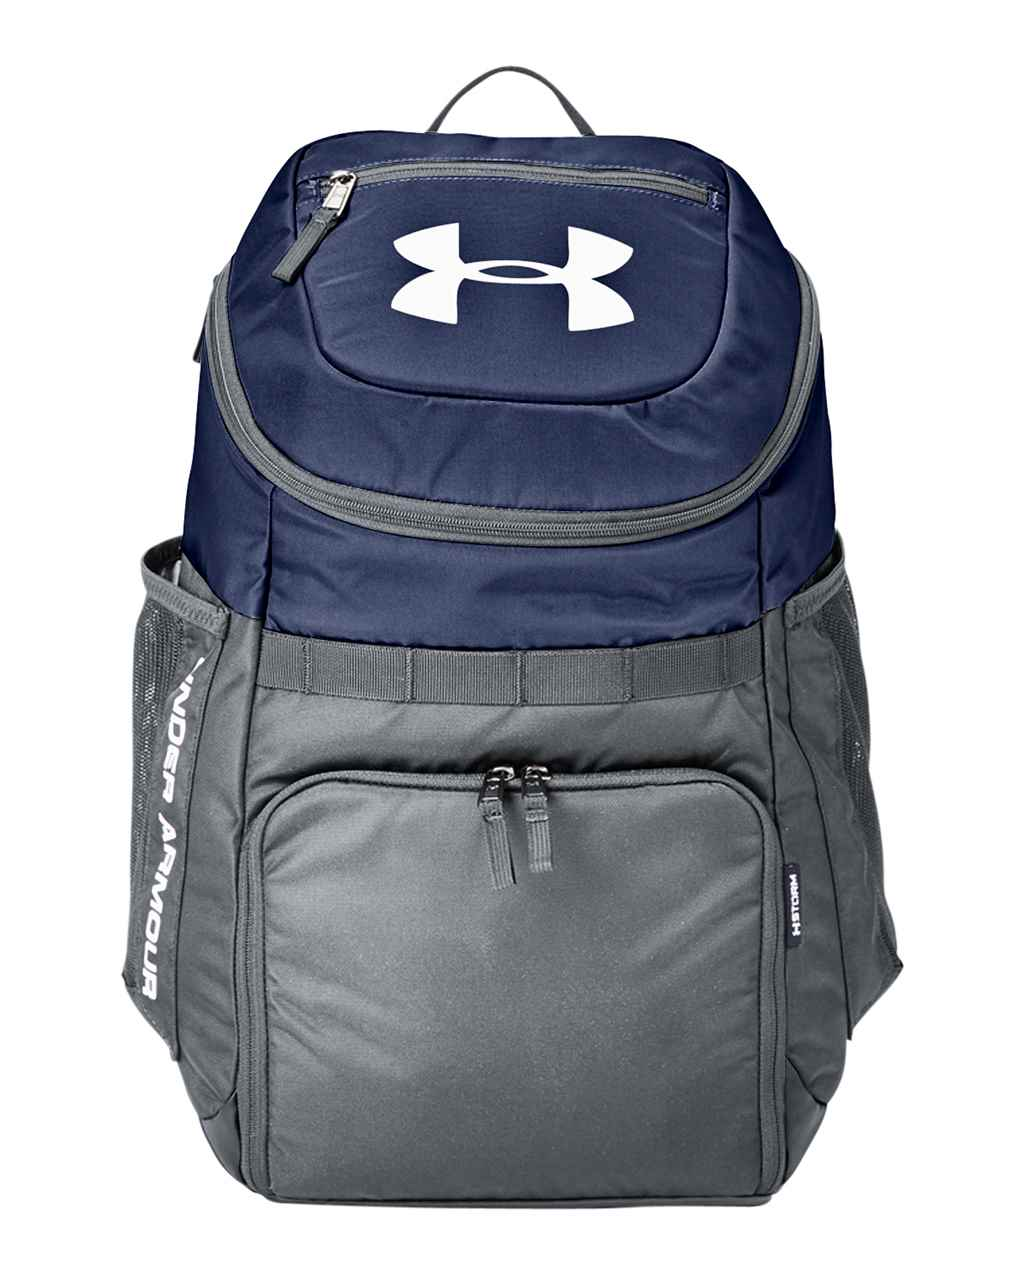 Picture of UNDER ARMOUR Undeniable Backpack